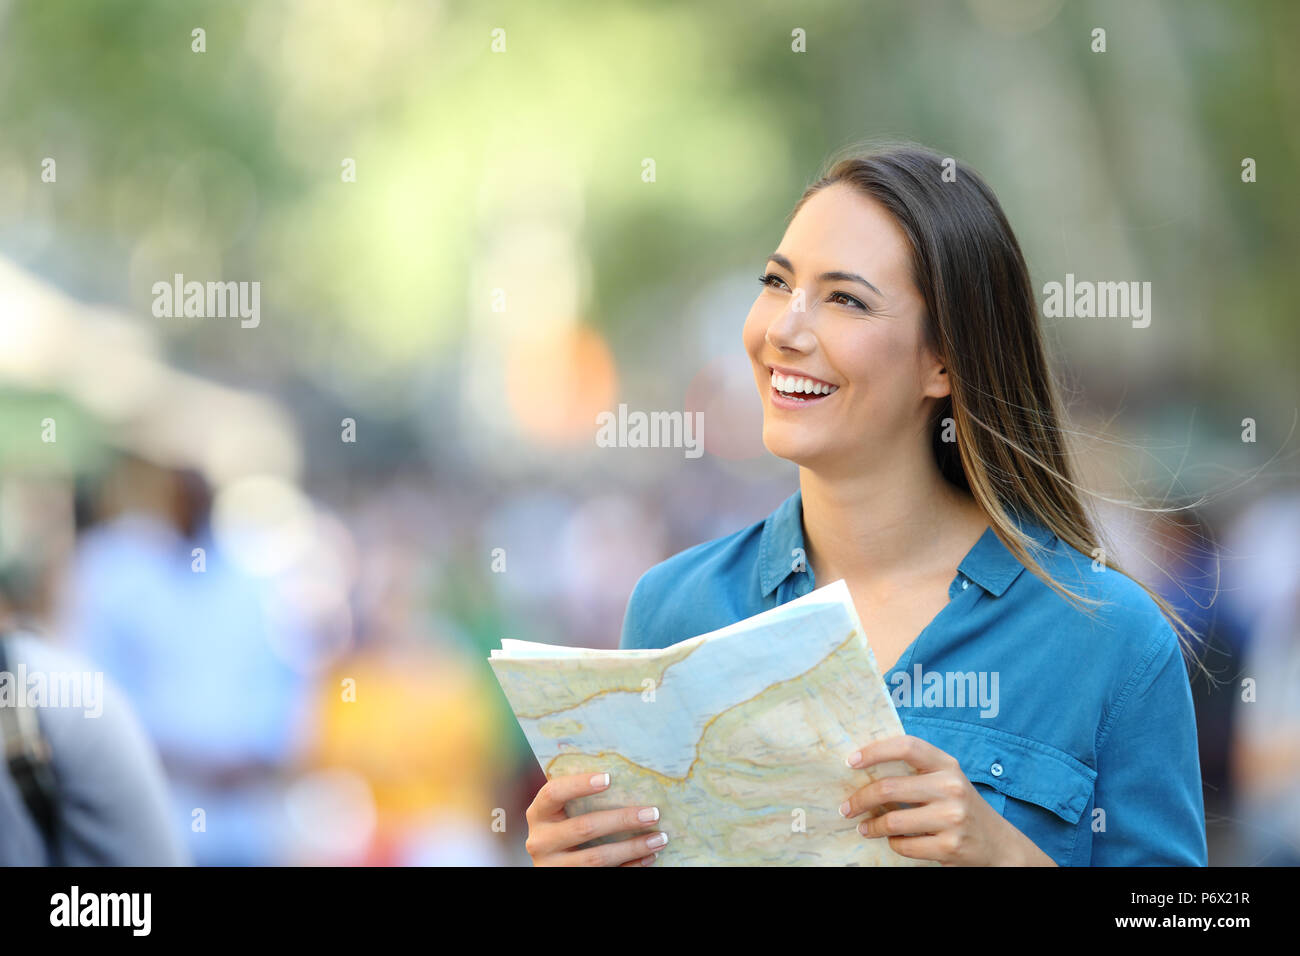 Happy tourist sightseeing and looking at side holding a guide on the street - Stock Image